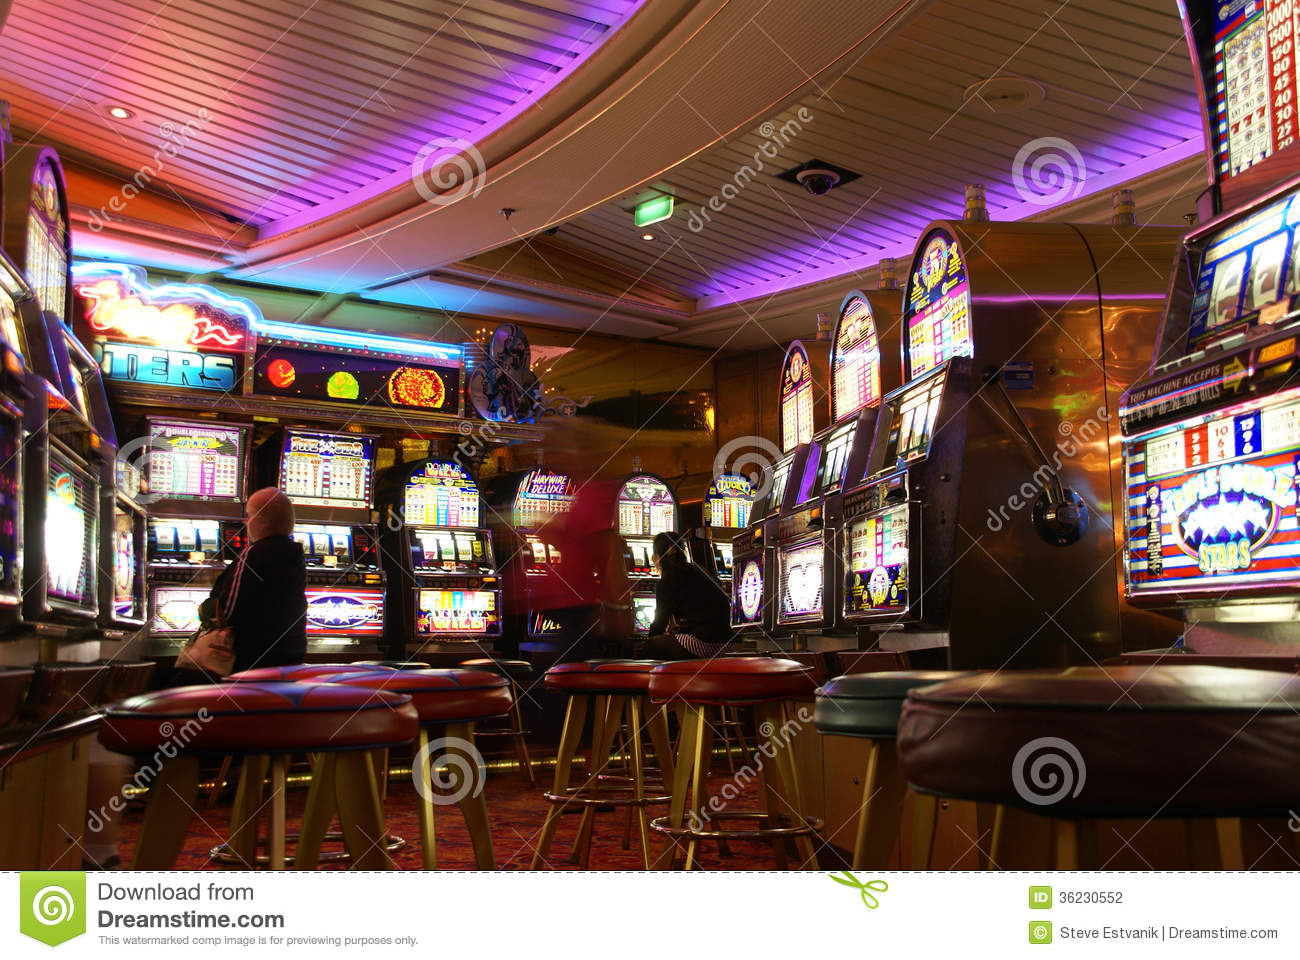 Cruise ship casino inside passage gambling license